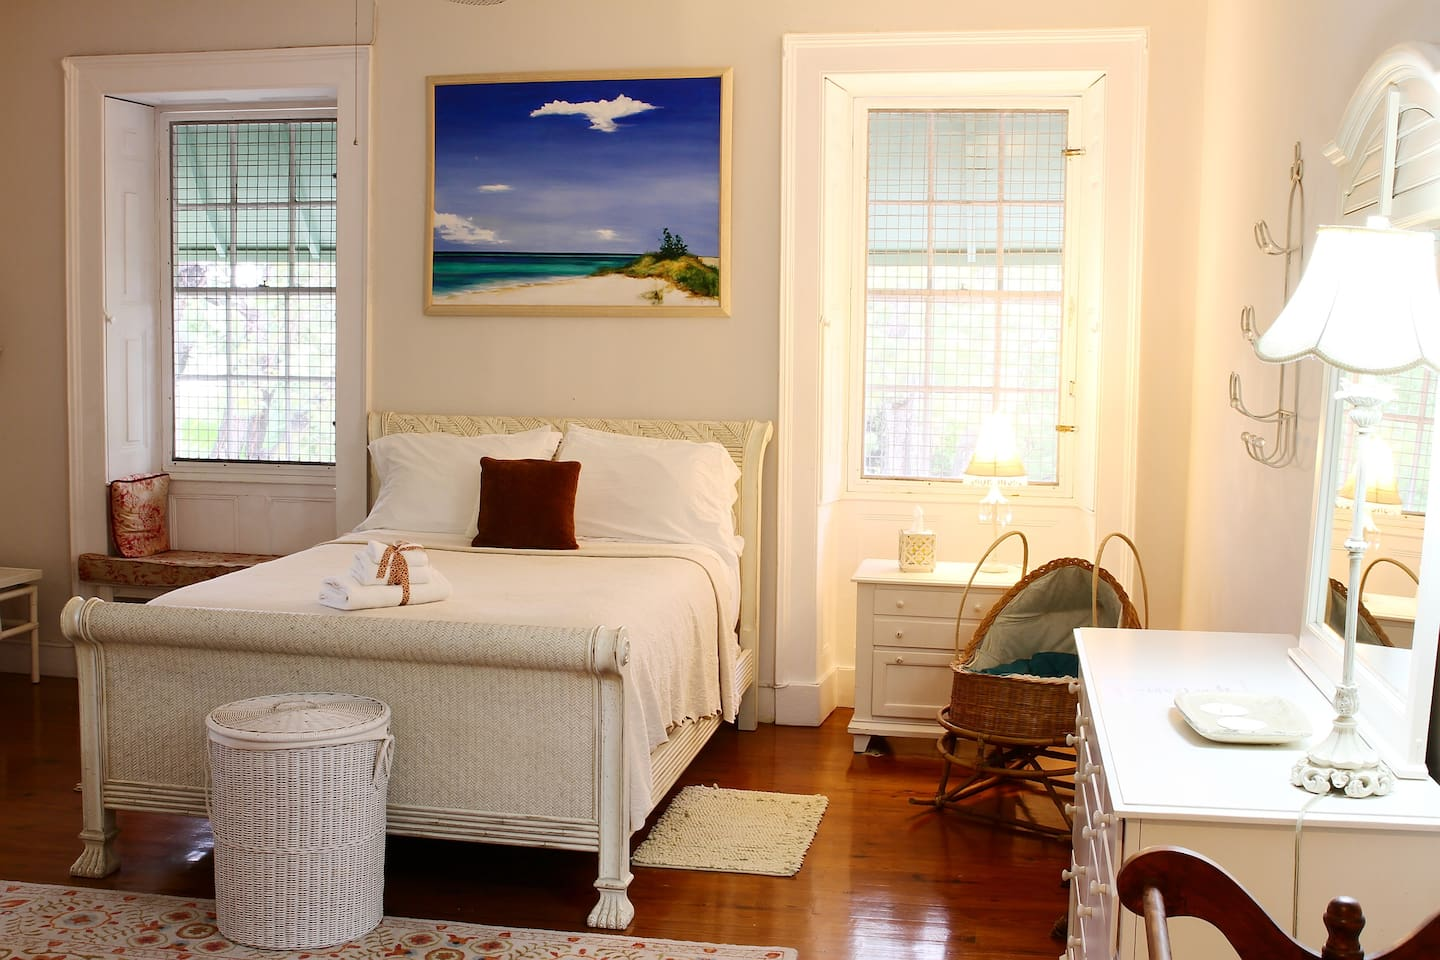 The Island Room with Queen Size bed, Mascioni Luxary Linnens & L'Occitane Bath Amenities